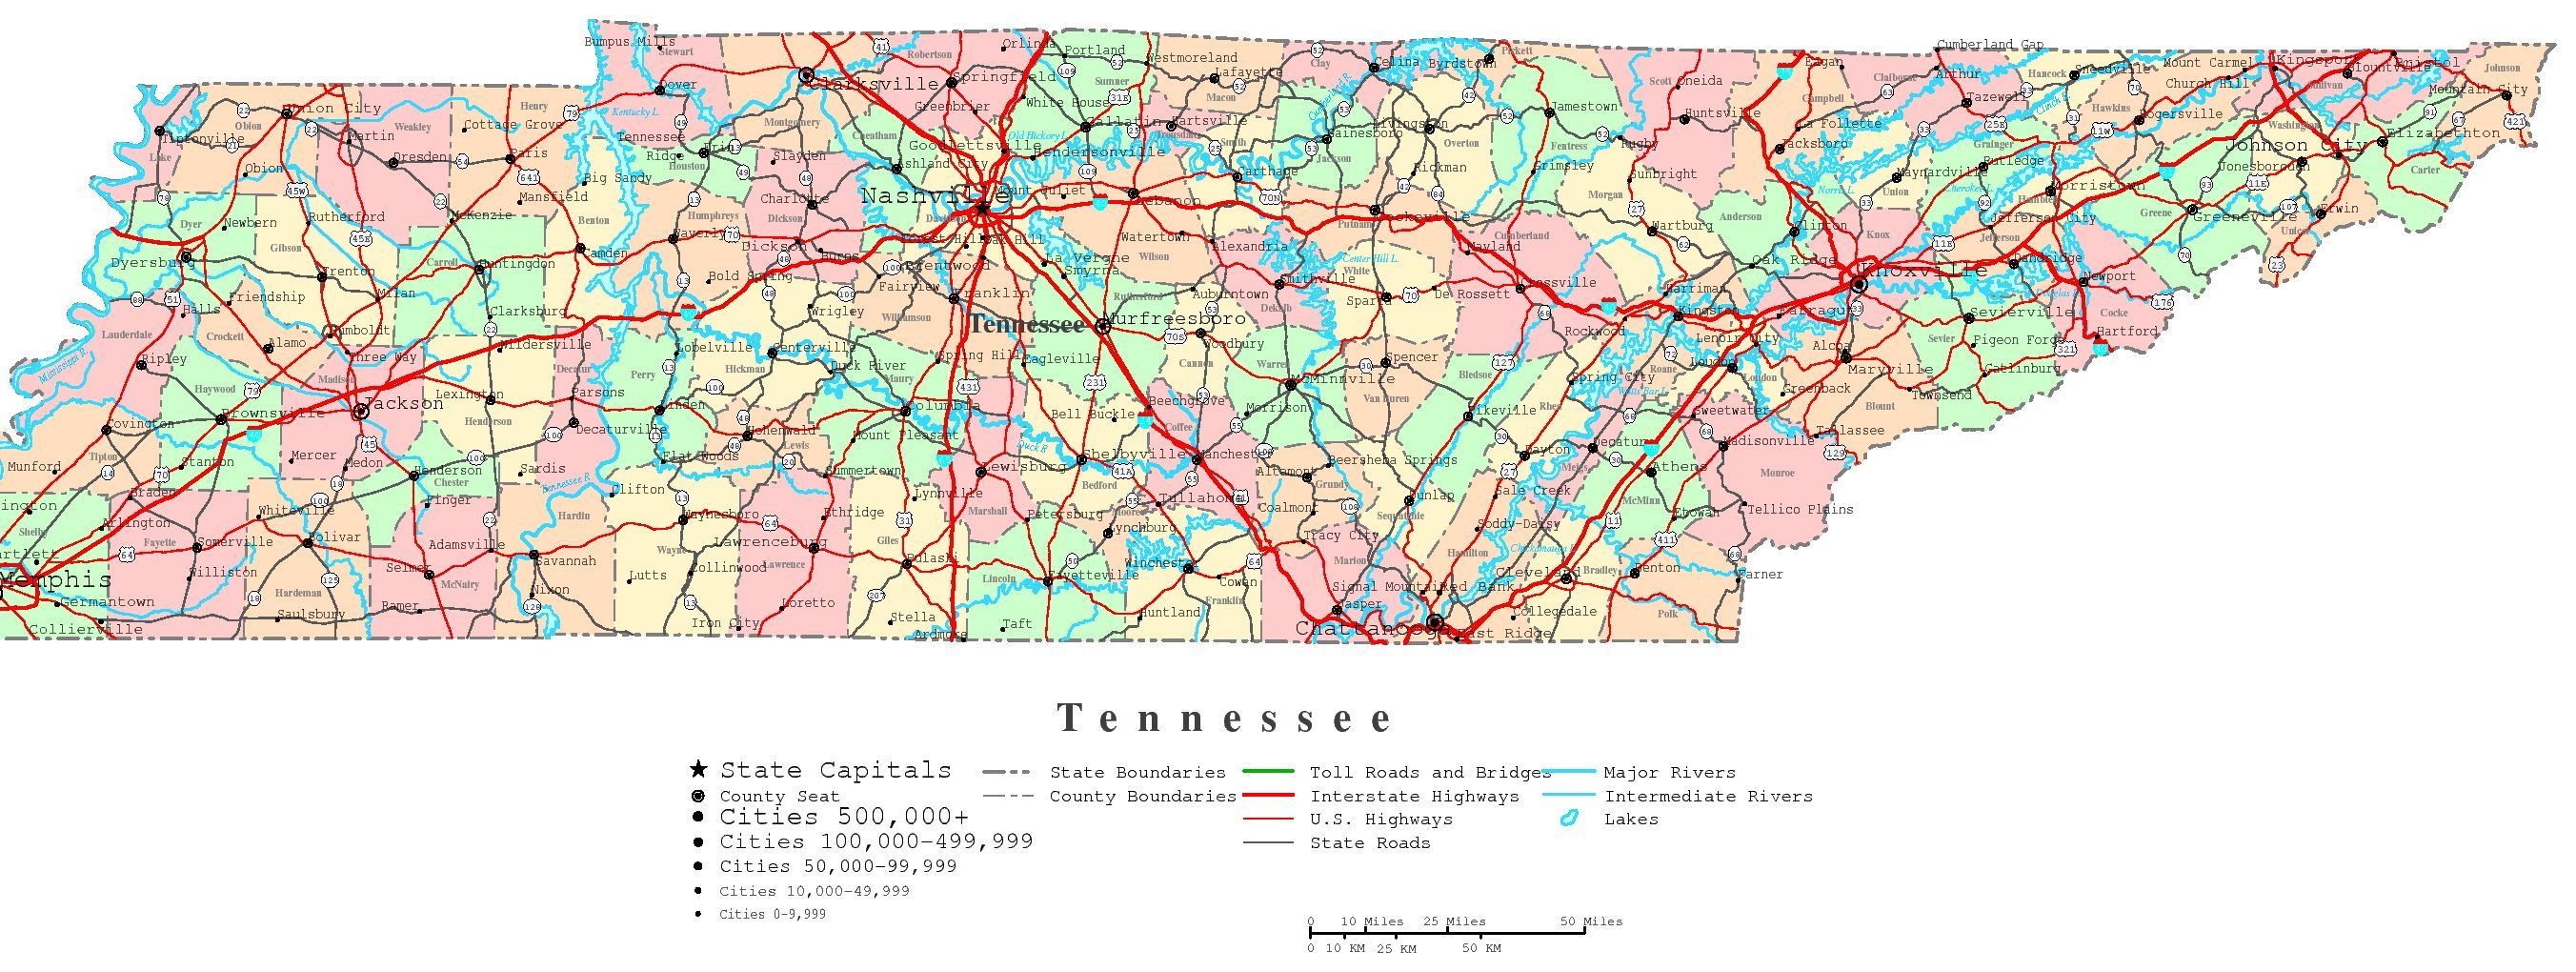 Tennessee Road Atlas Tennessee Printable Map Traveling